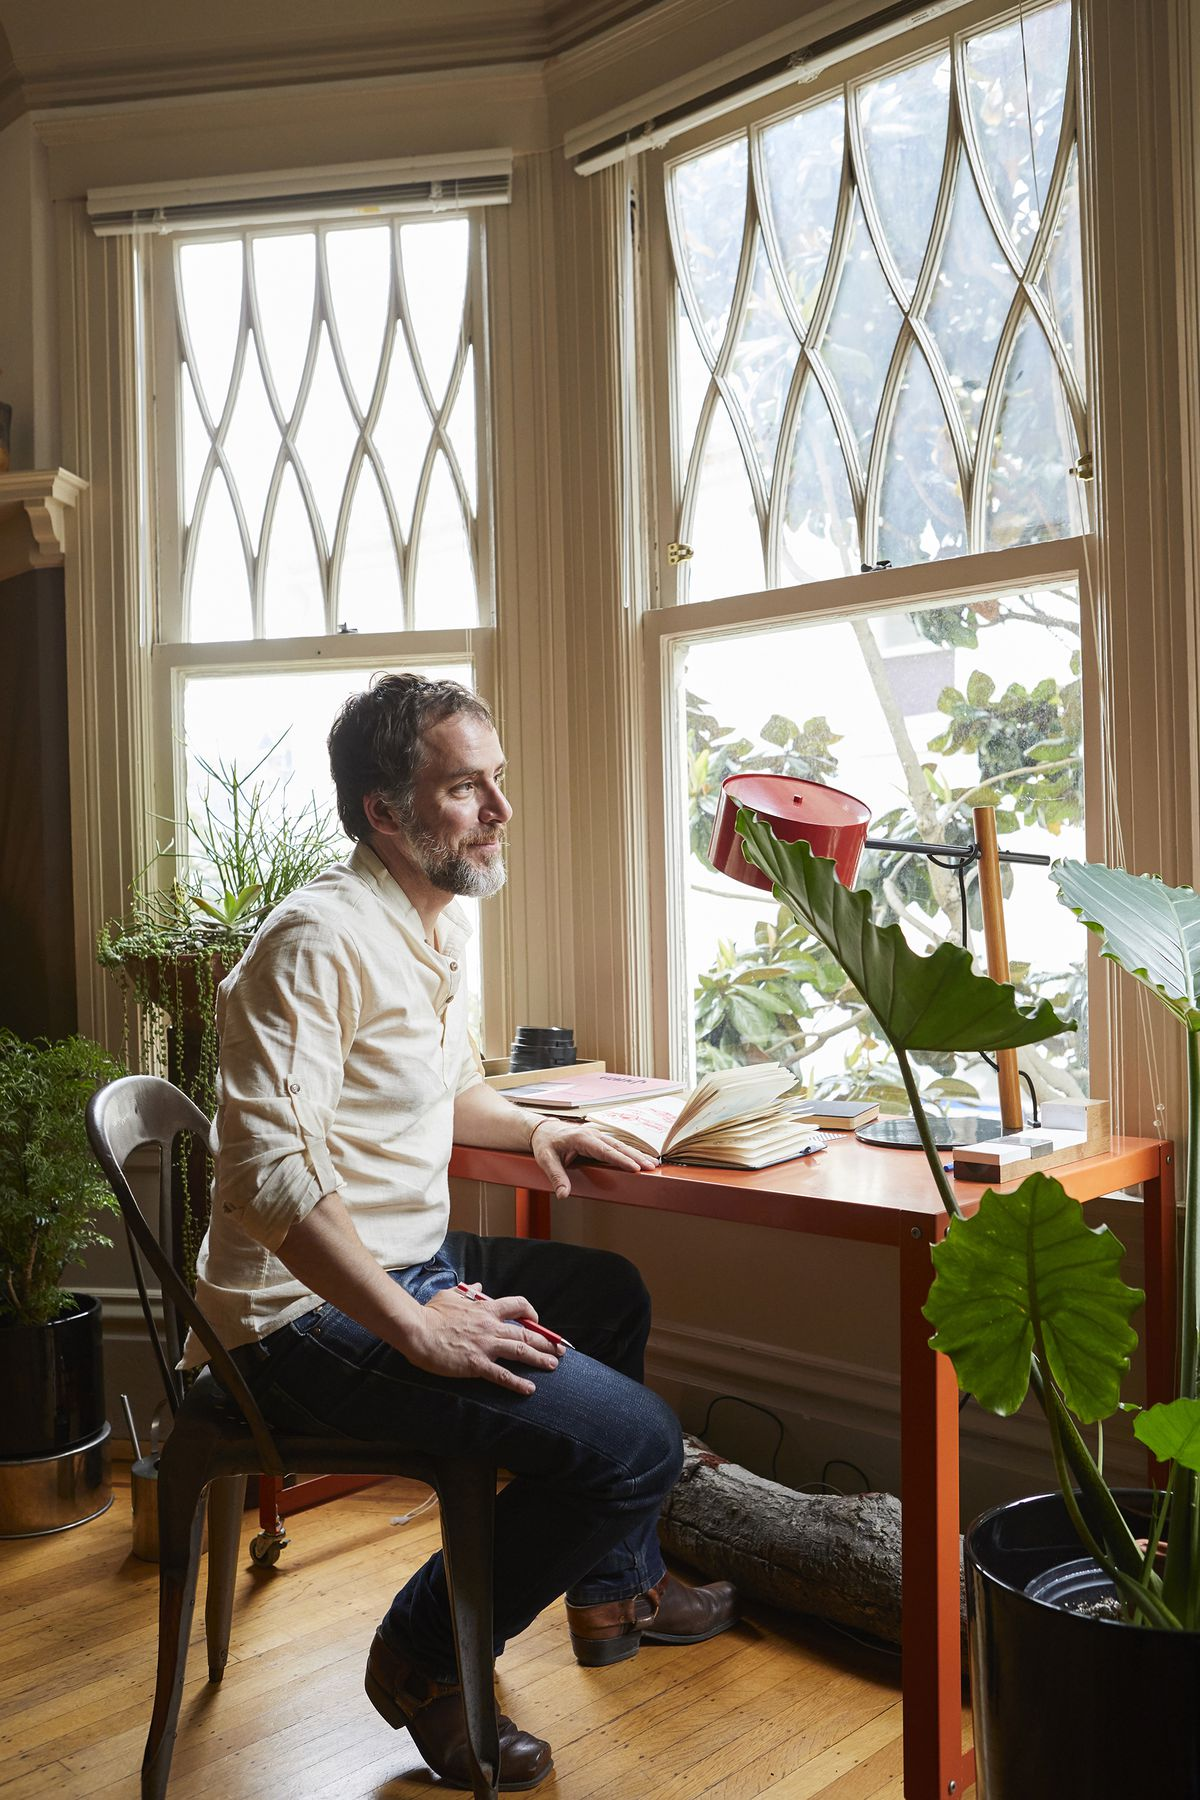 A man sits in a chair in front of a red table that has an open book and a red lamp. The man is leaning on the table while looking out the window in front of the desk. There is a houseplant in the foreground.